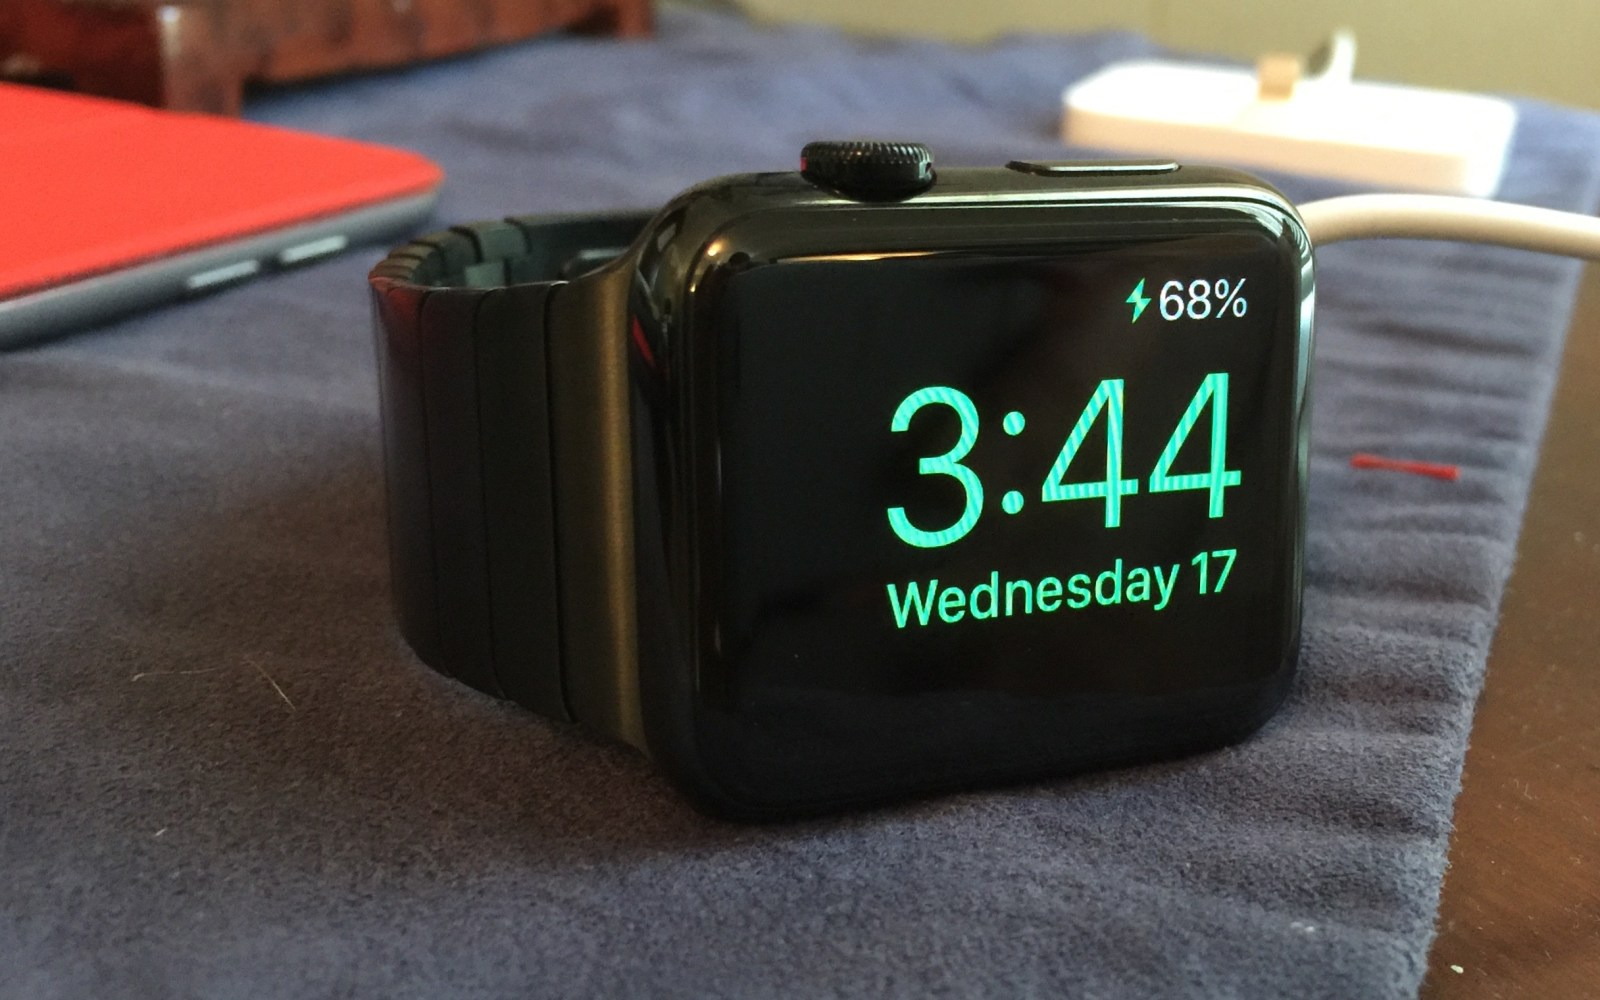 Apple Watch 2: Apple plans FaceTime camera, iPhone-free Wi-Fi, $1000+ models, similar battery